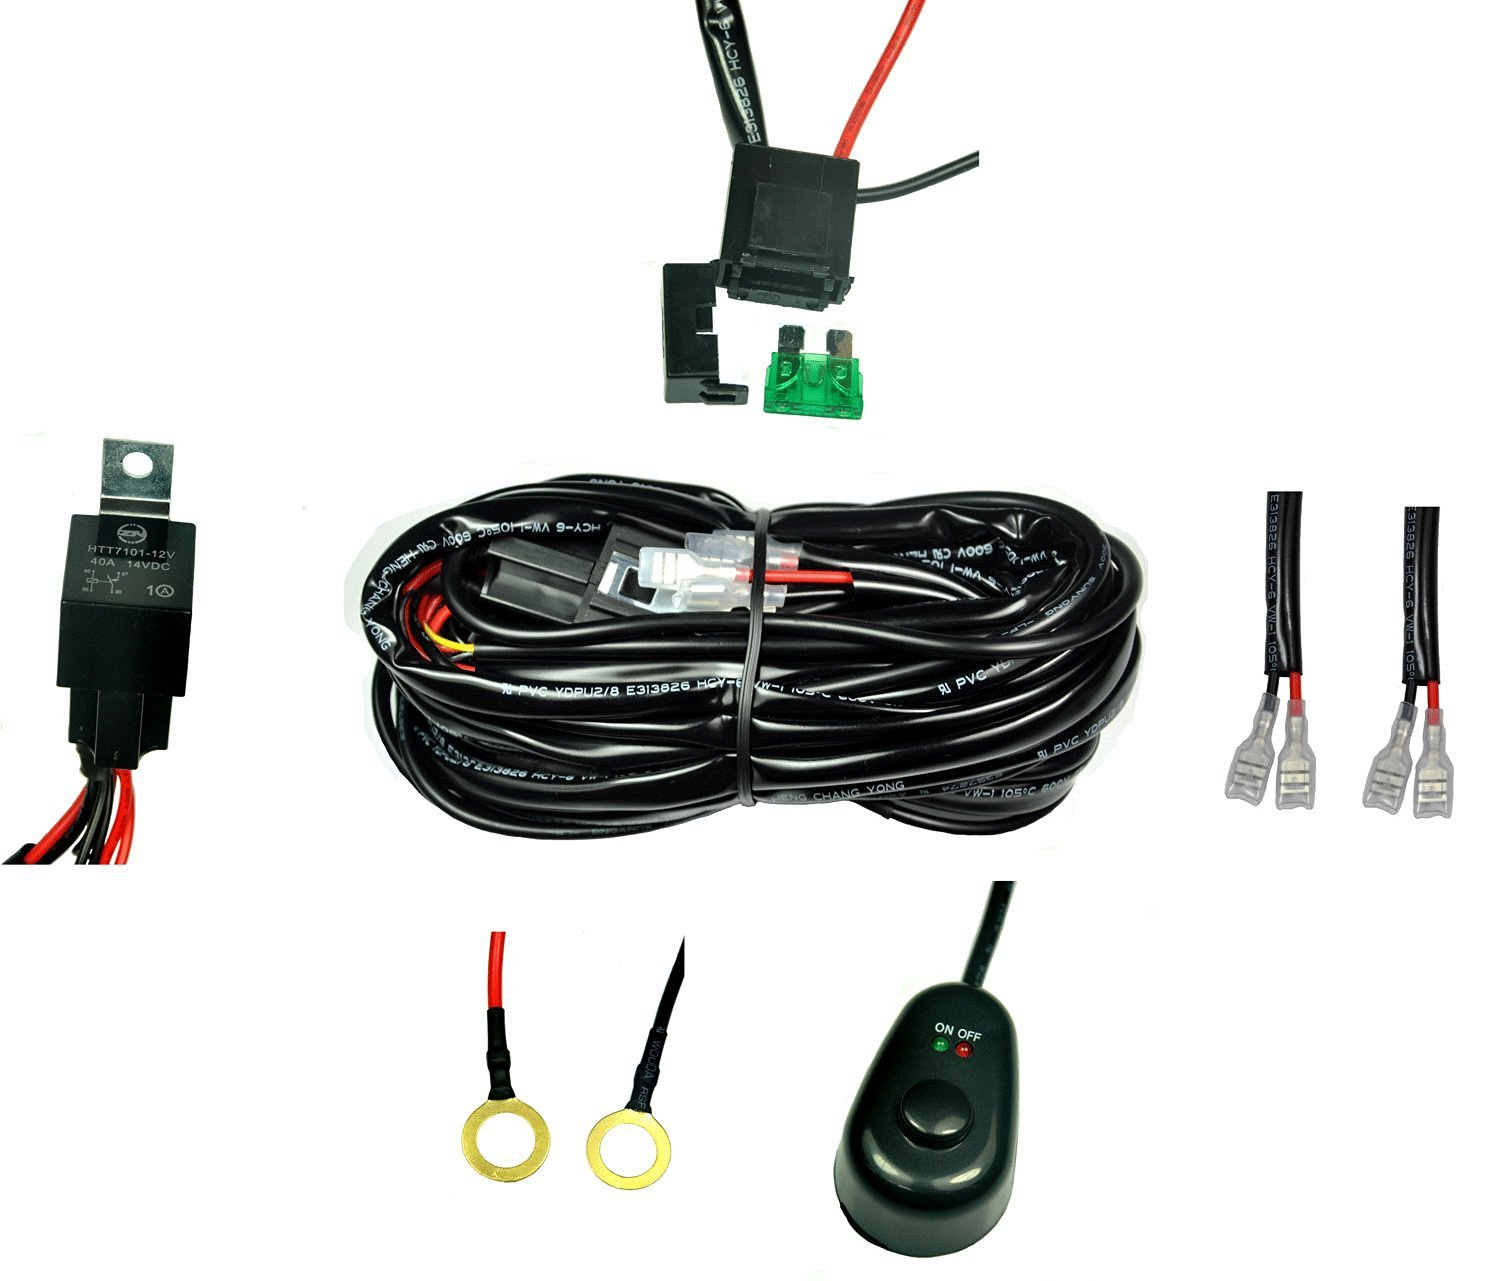 Wondrous Cheap Wiring Harness For Jeep Find Wiring Harness For Jeep Deals On Wiring Database Numdin4X4Andersnl